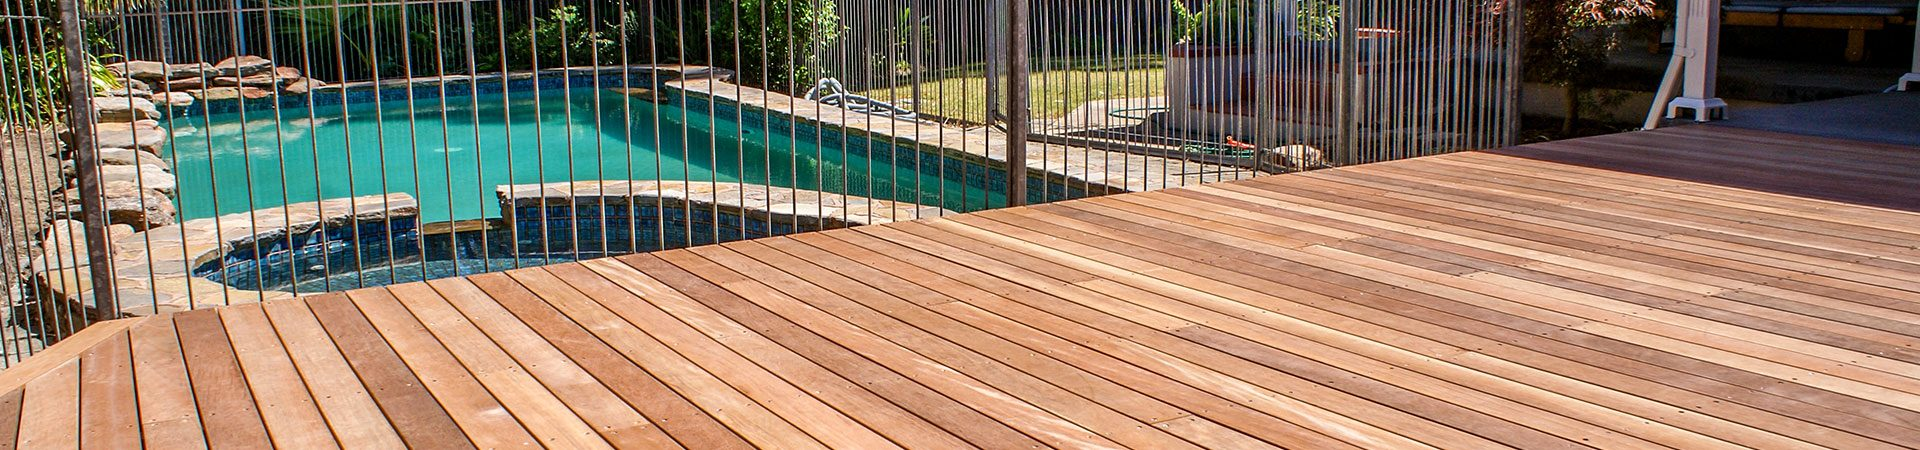 Timber decking overlooking pool in adelaide